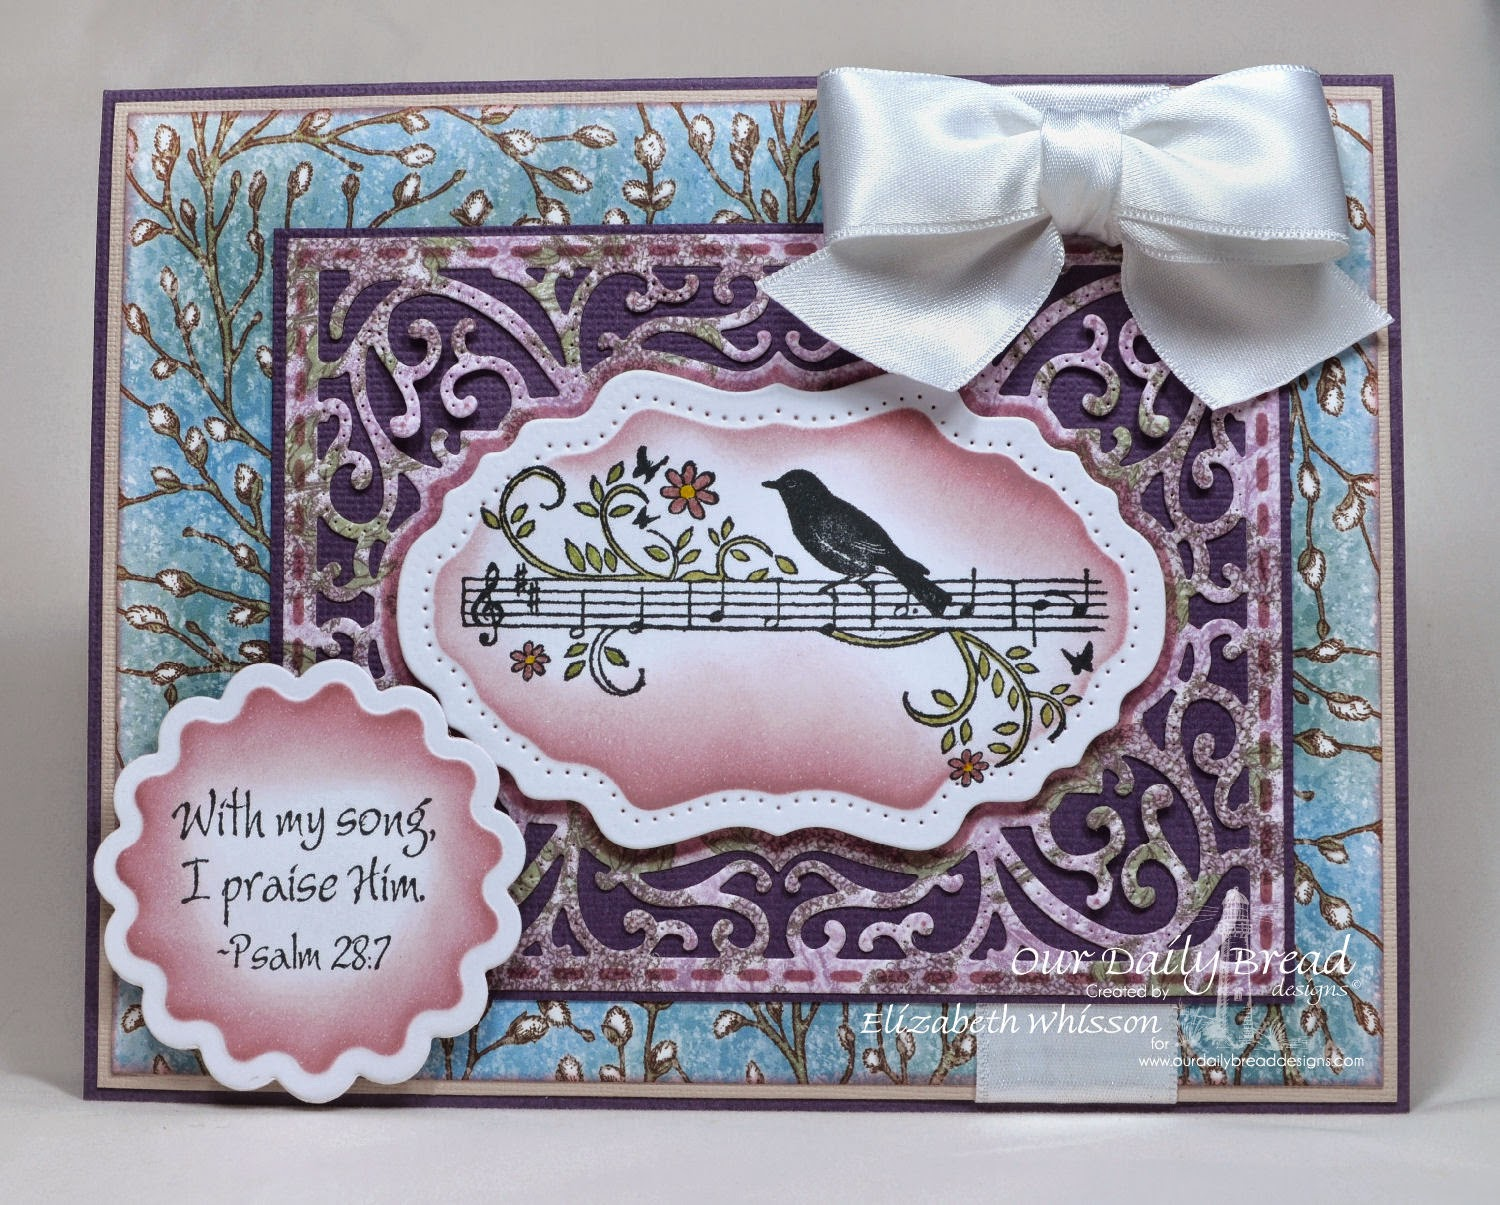 Our Daily Bread Designs, Music Speaks, ODBD Vintage Flourish Pattern Dies, ODBD Recipe Card and Tags Dies, ODBD Blooming Garden Paper Collection, Designed by Elizabeth Whisson